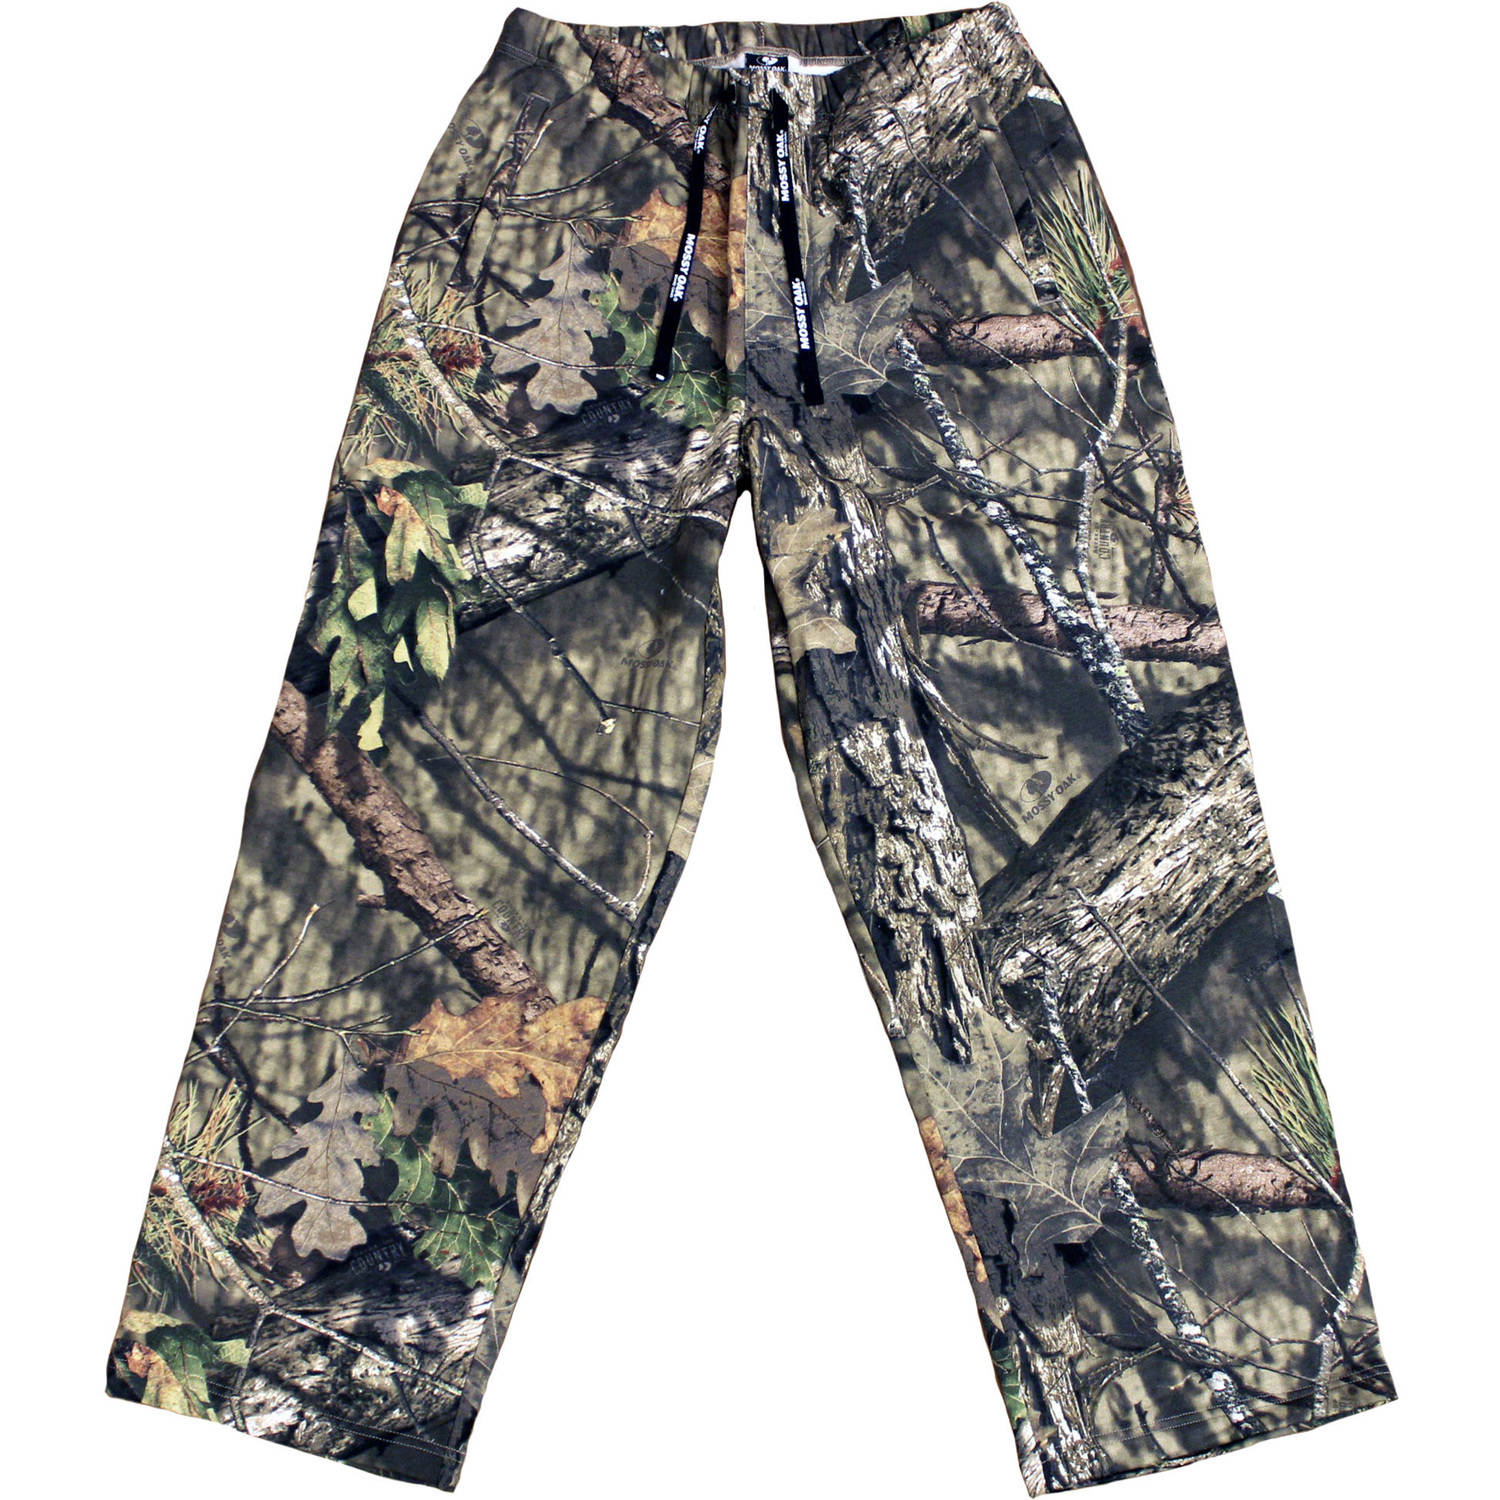 Men's Camo Sweatpants